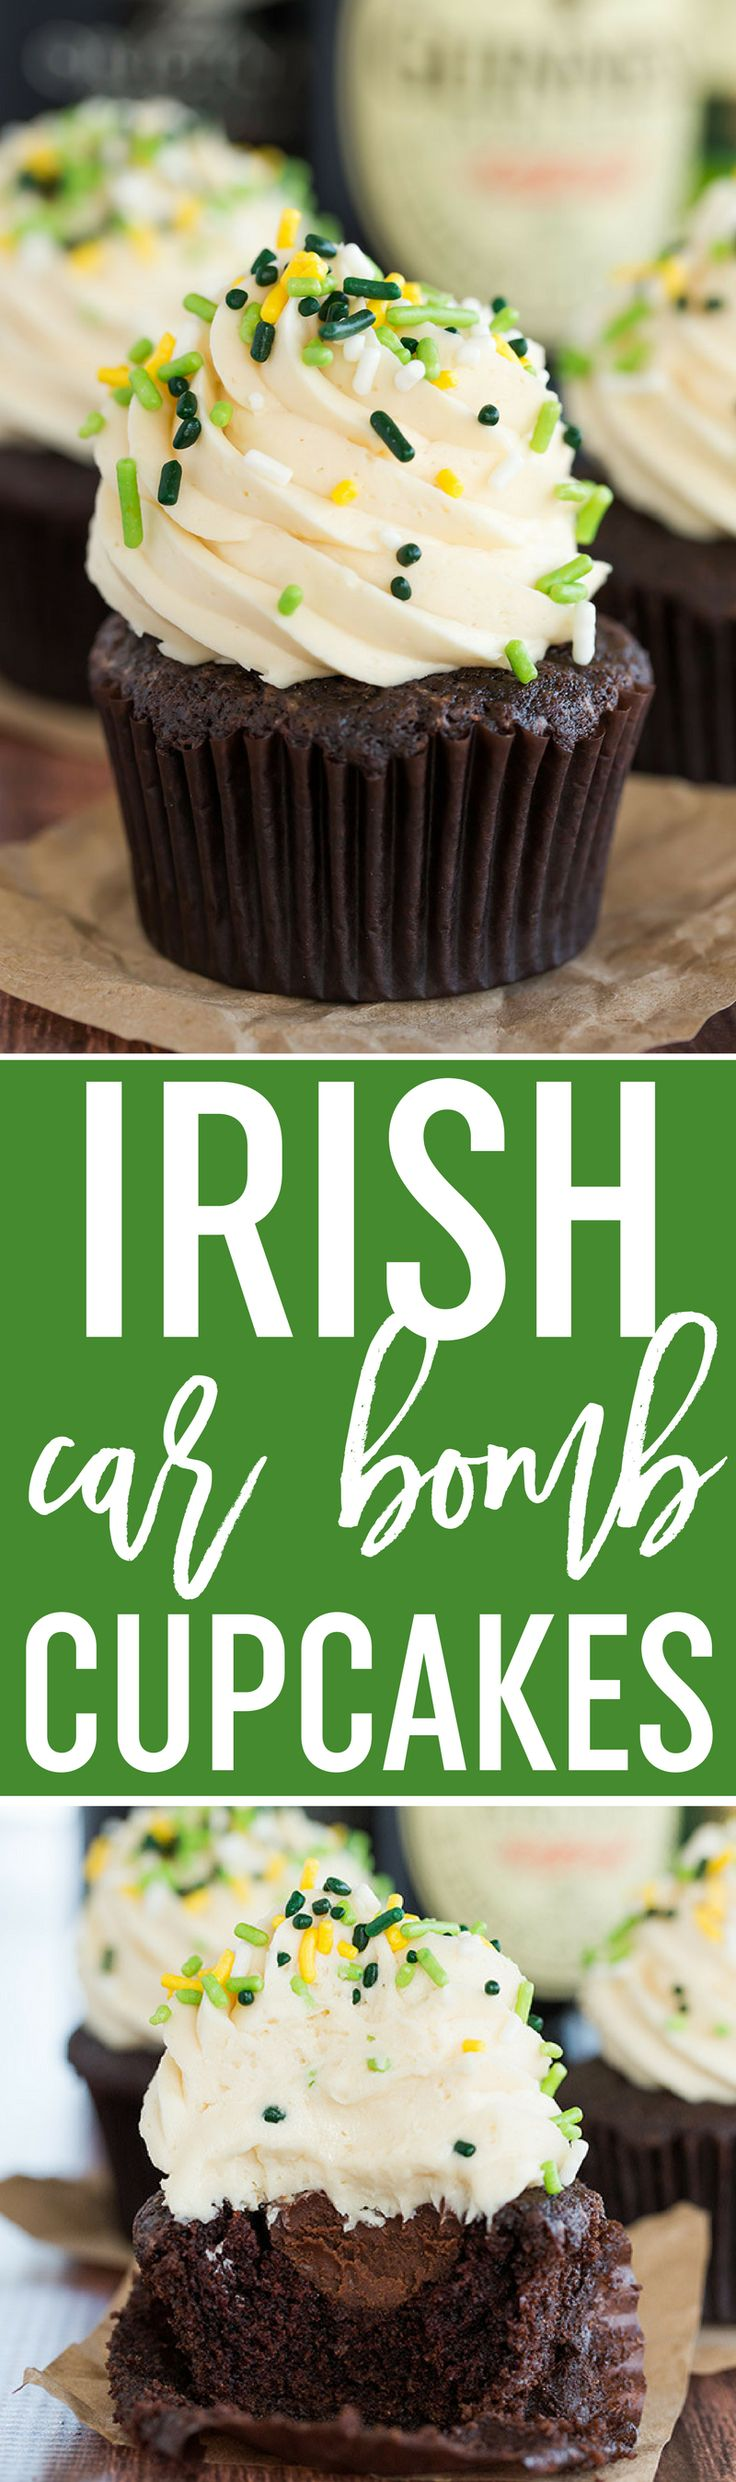 Irish Car Bomb Cupcakes :: Guinness chocolate cake, Jameson whiskey ganache filling, and Baileys buttercream frosting. via @browneyedbaker